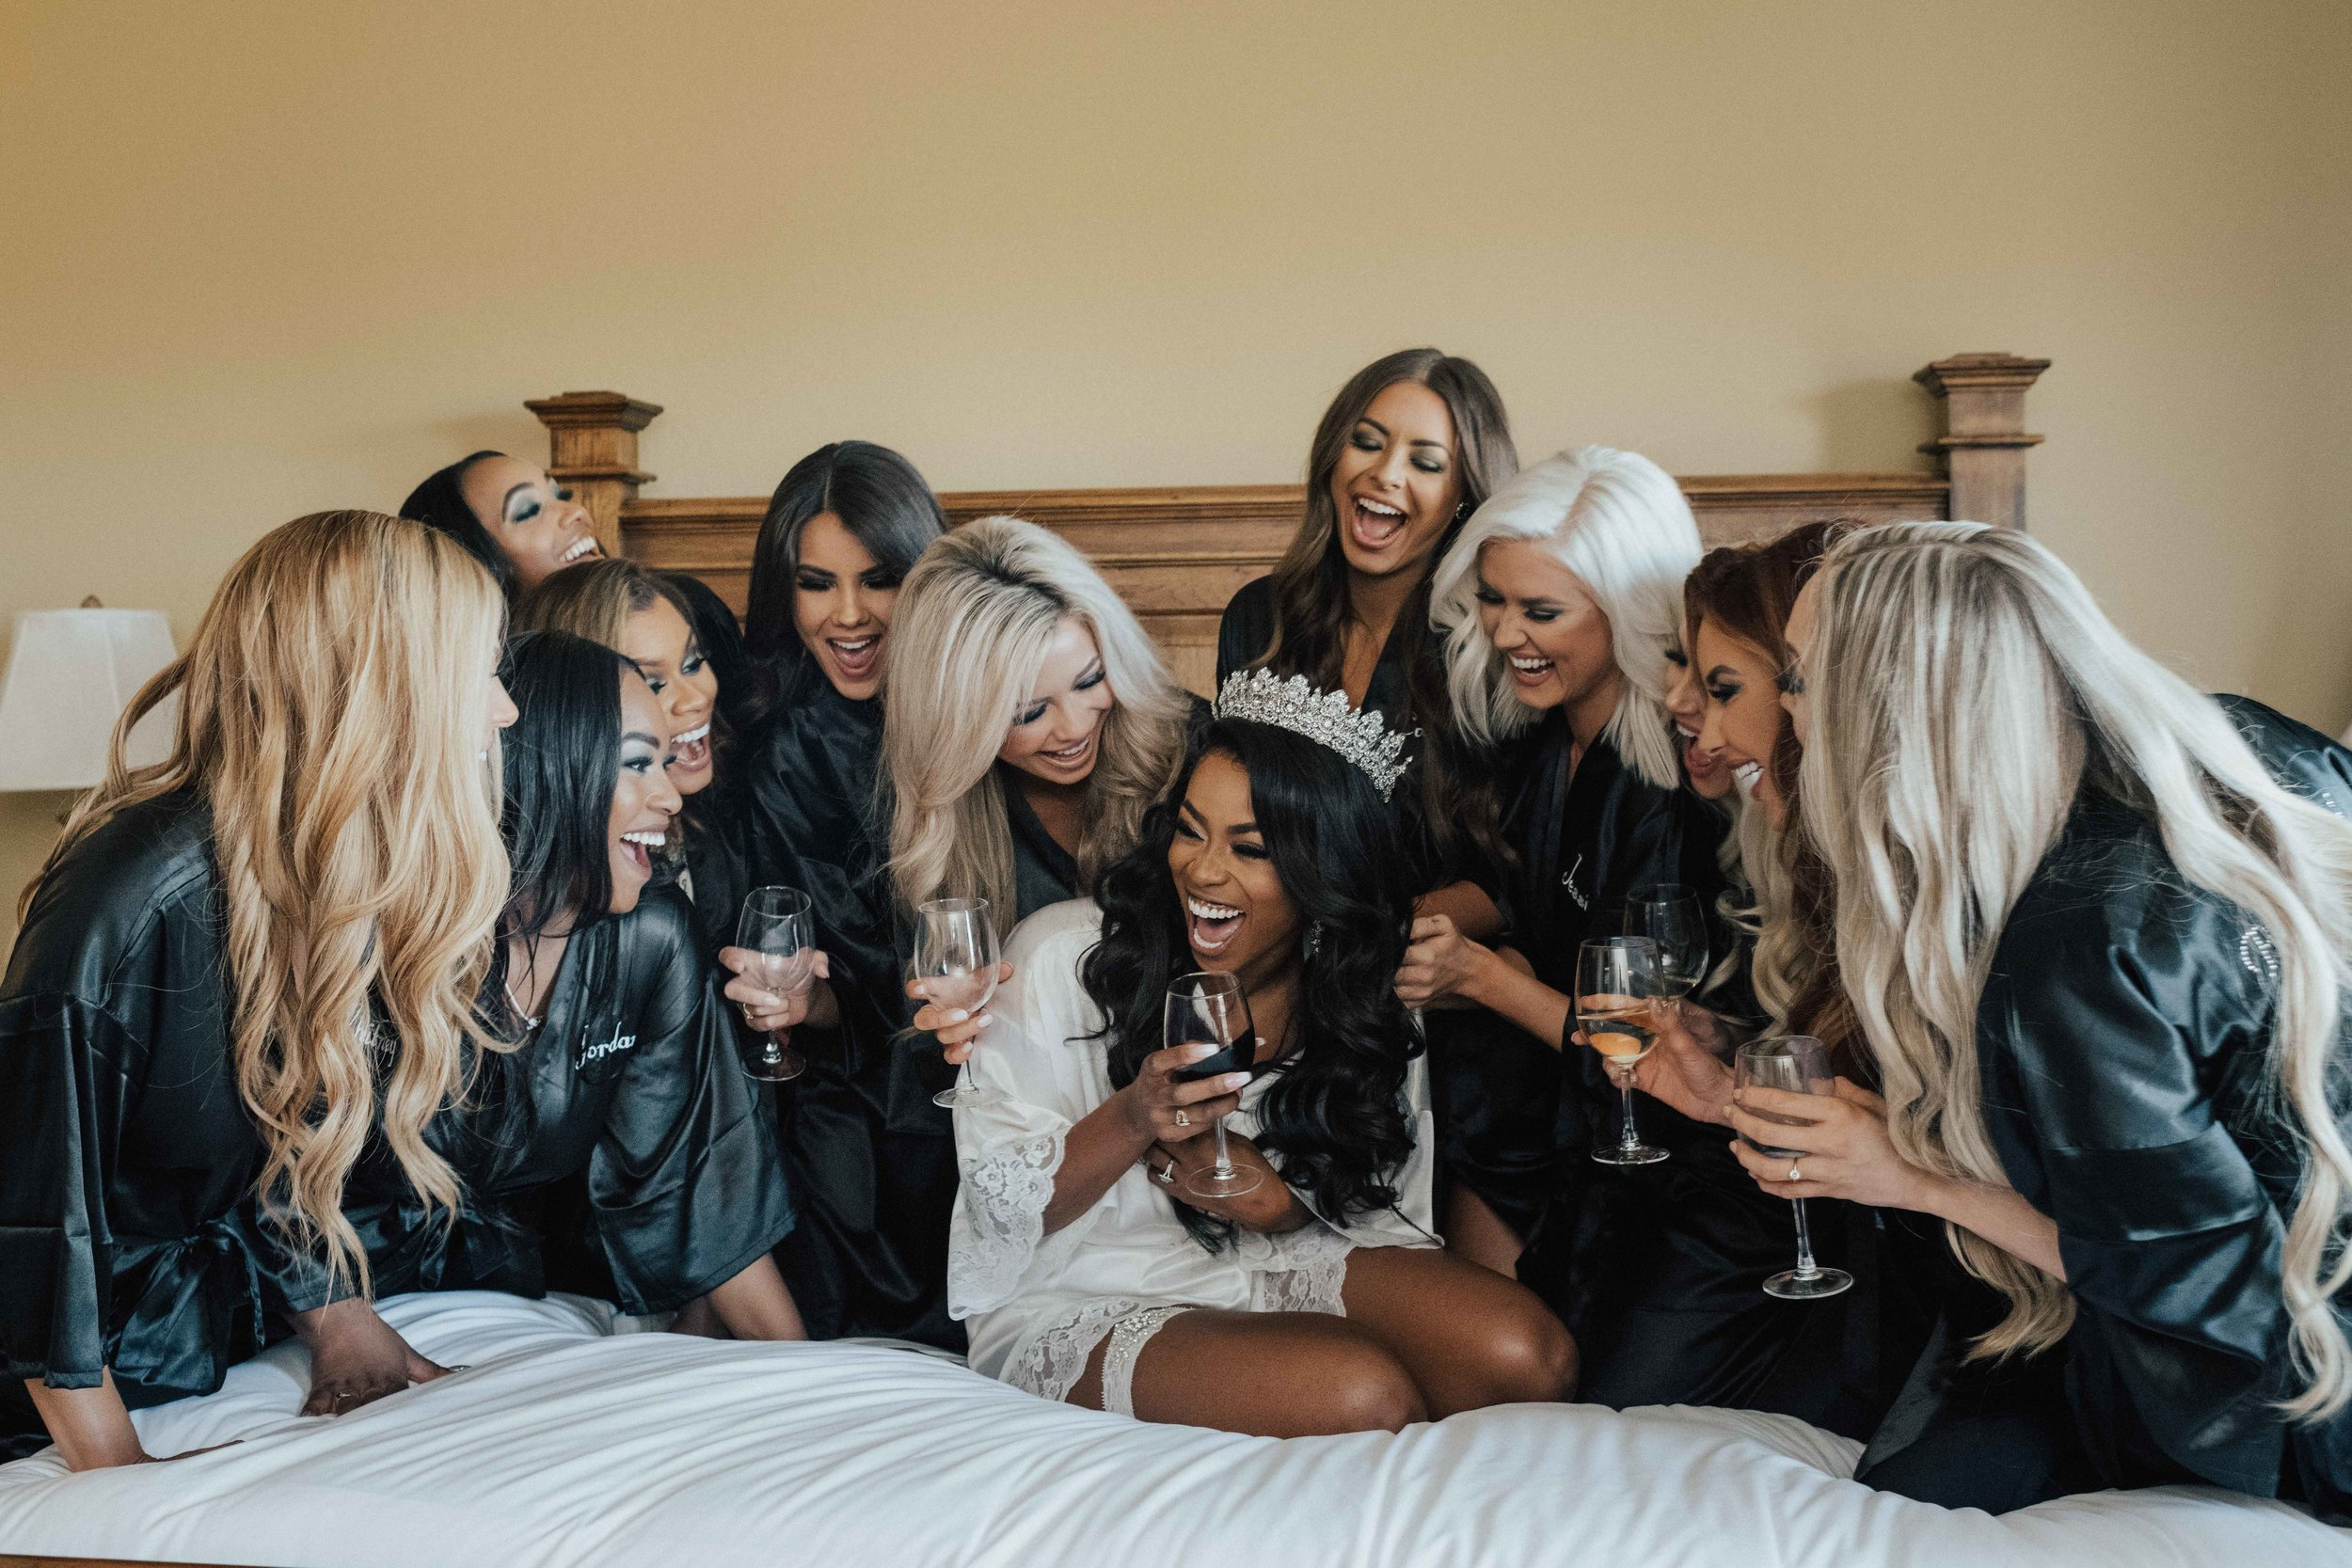 My bridesmaids: Whitney Dillon Matron of honor, Jordan Dodson, Evony Thompson, Ashley Parker,Jocelyn Watts, Kristen Stiles, Laura Little, Courtney Little, Jessi Boseman, Morgan Abel, Tiffany Harwell, Amanda Mertz